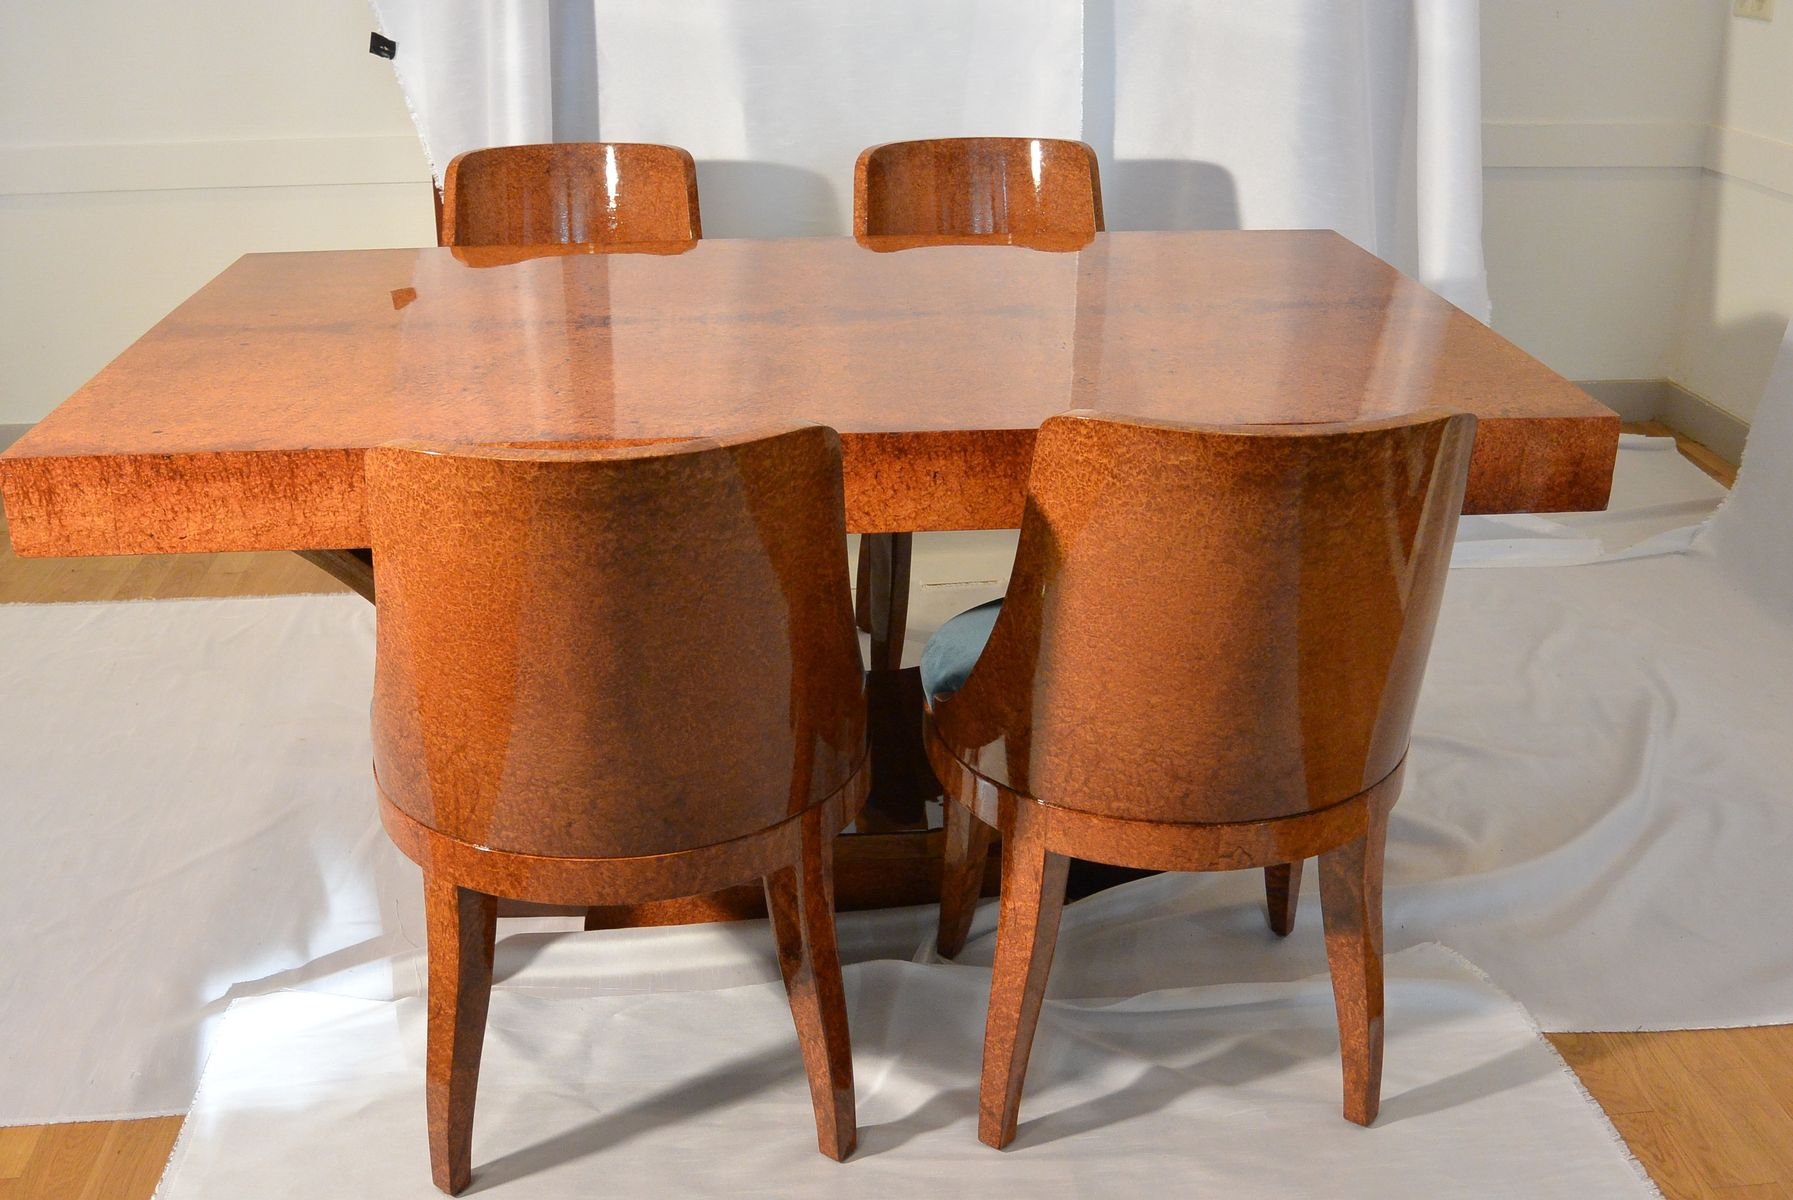 French Art Deco Ambonya Veneer Table 1920s for sale at Pamono